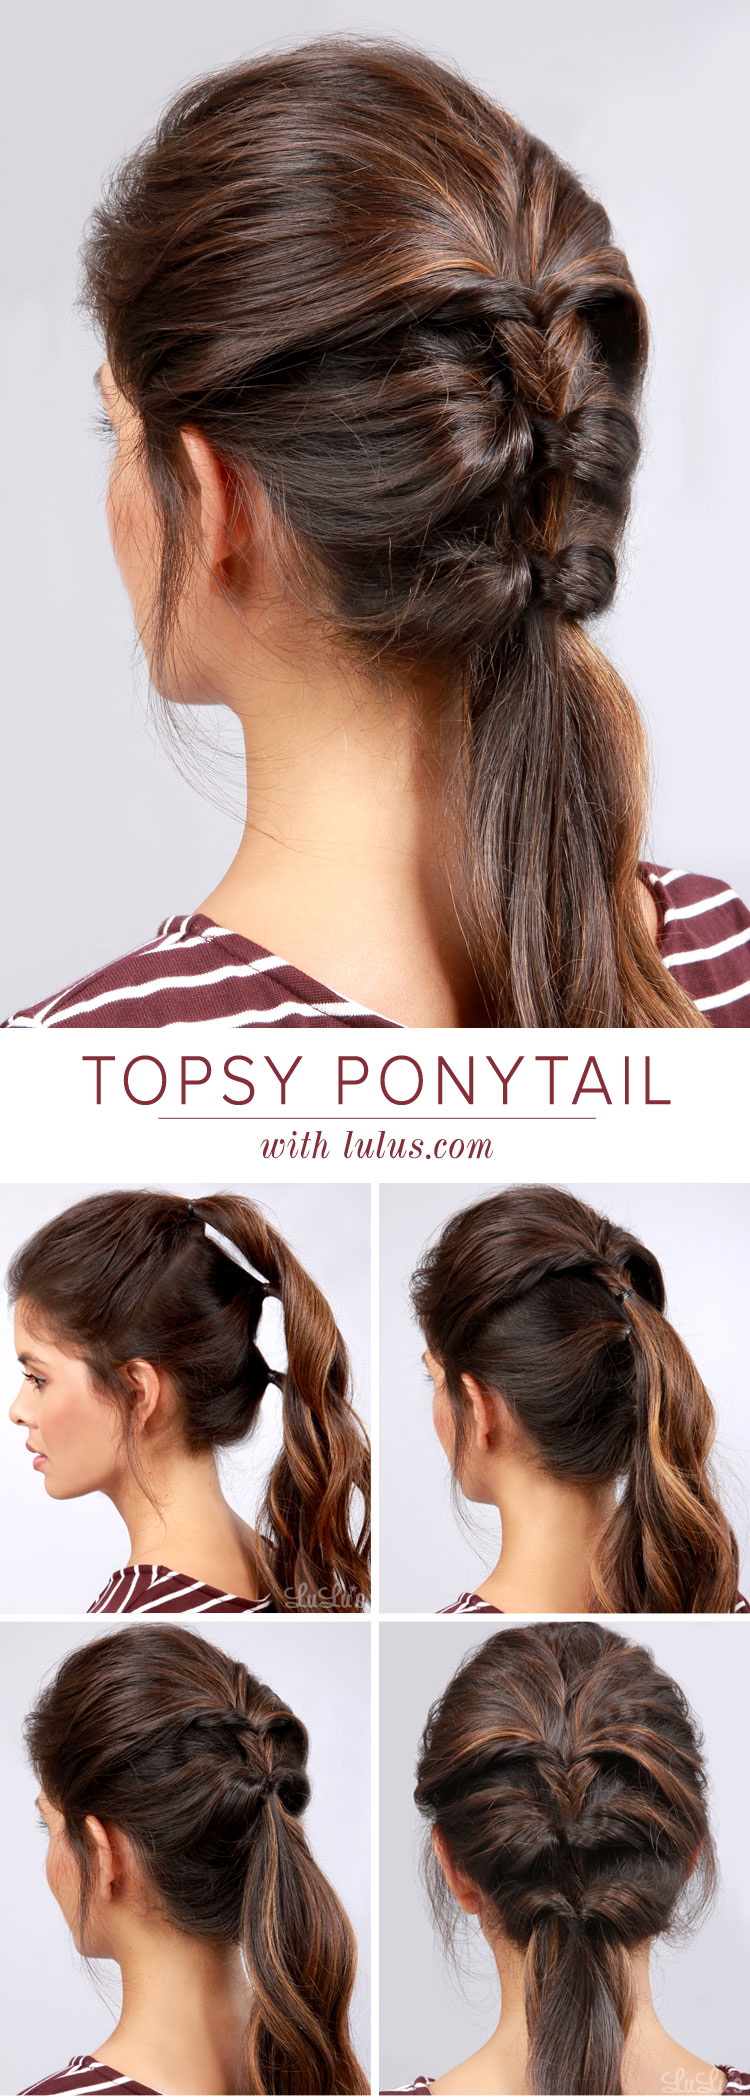 7 Fantastic Hairstyles Step By Step 2